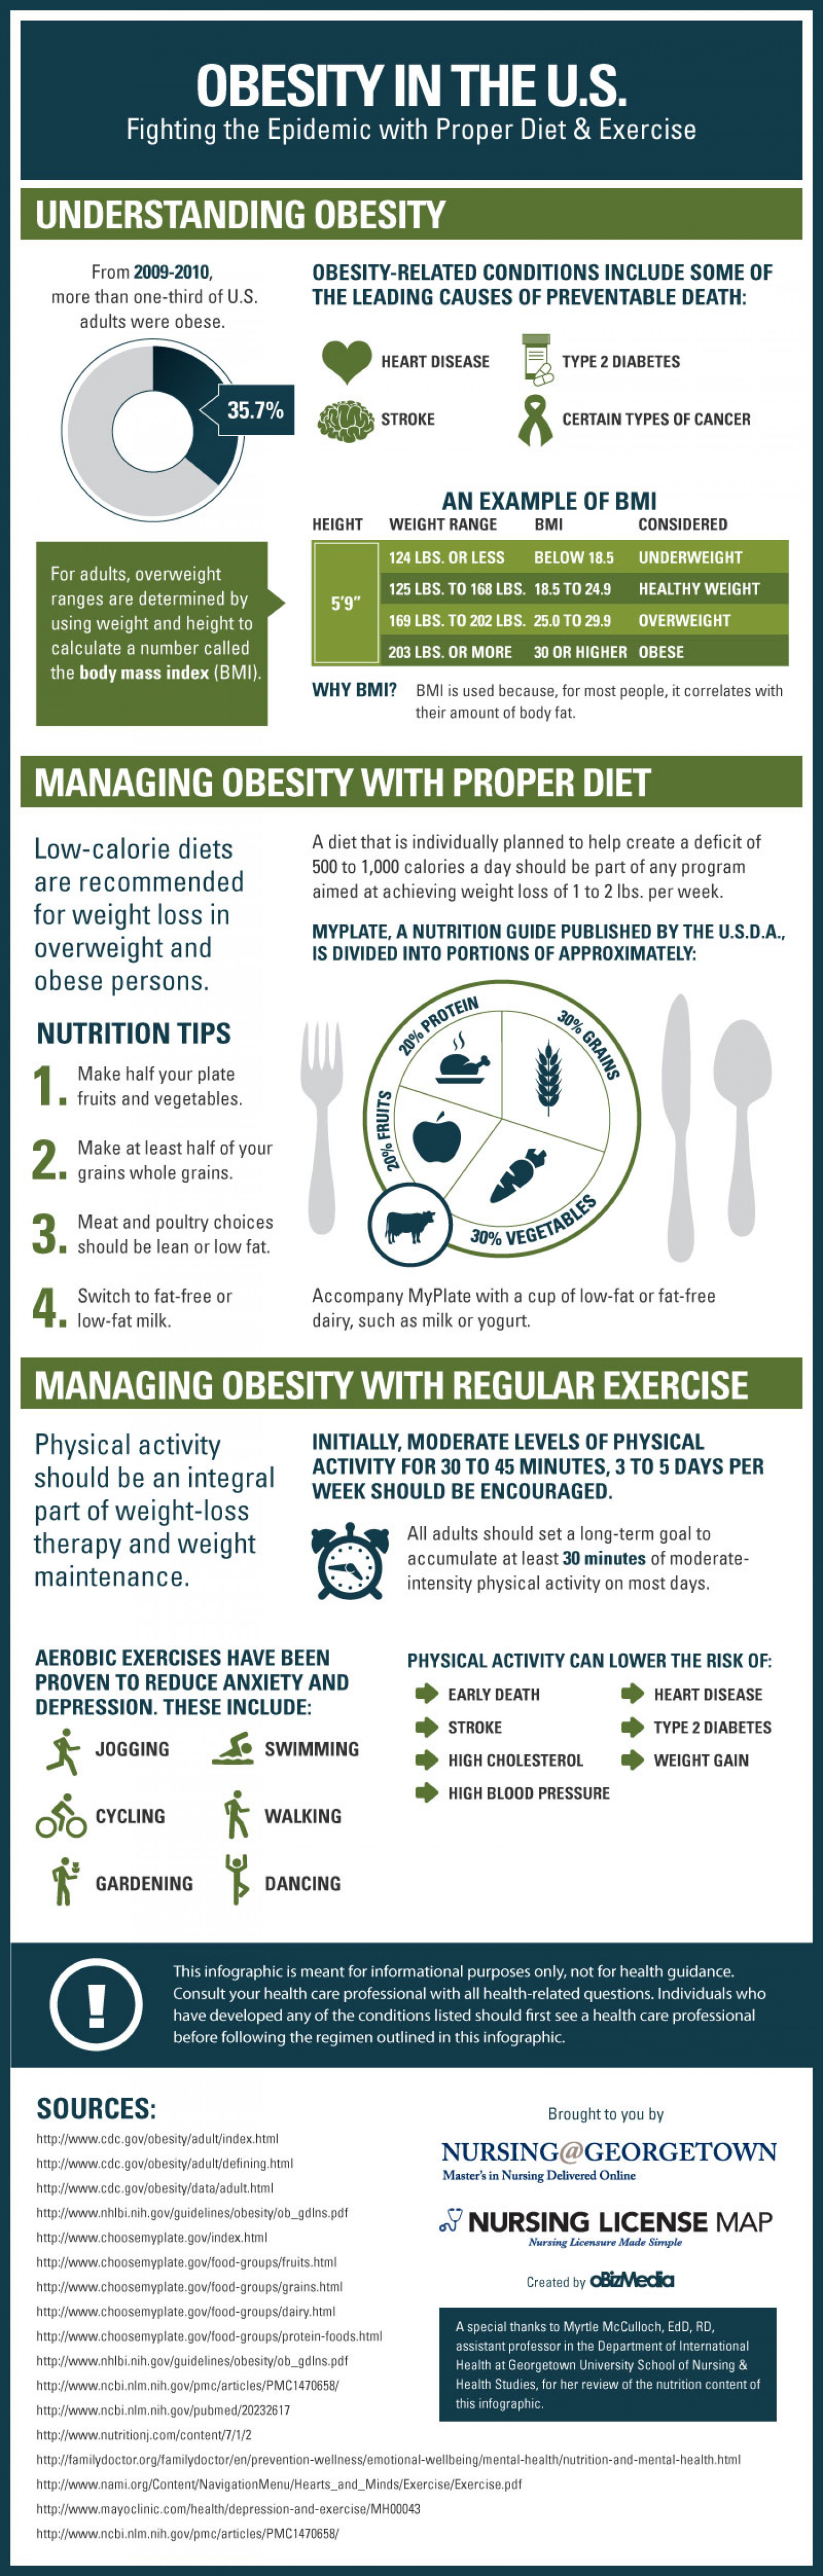 Obesity In The U.S.: Fighting The Epidemic With Proper Diet & Exercise Infographic